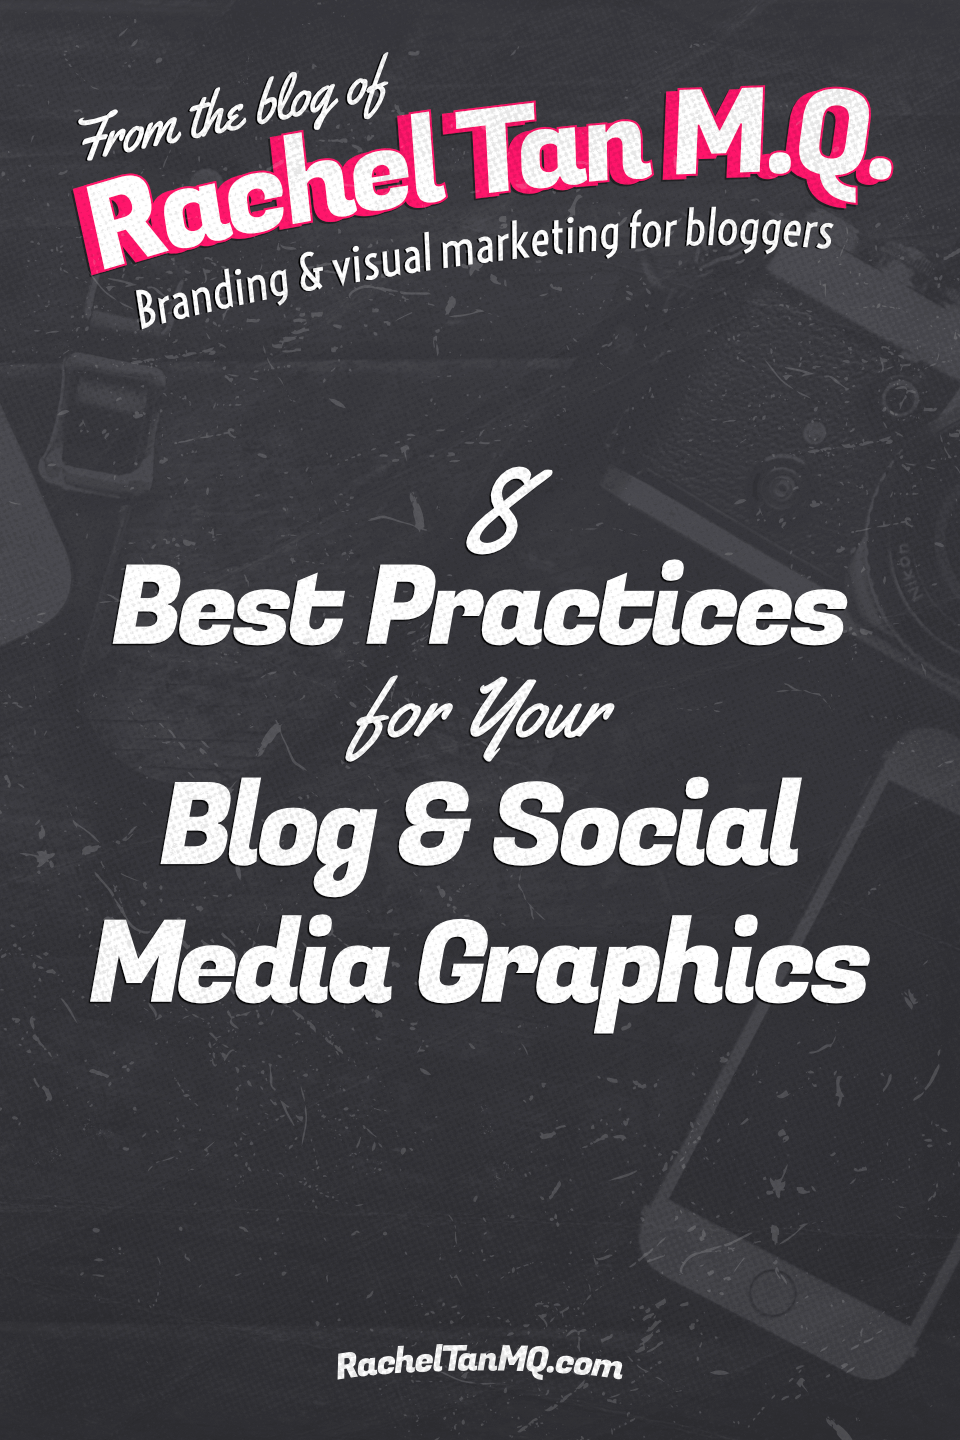 Looking for tips on how to design blog graphics that get shit-tons of clicks on social media? This post is for you! • graphic design tips | graphic design tutorials | visual marketing | how to promote your blog on pinterest | how to promote your blog on instagram | pinterest tips for bloggers | instagram tips for bloggers #visualmarketing #pinteresttips #instagramtips #pinterestmarketing #instagrammarketing #socialmediagraphics #bloggraphics #bloggingtips #graphicdesigntips